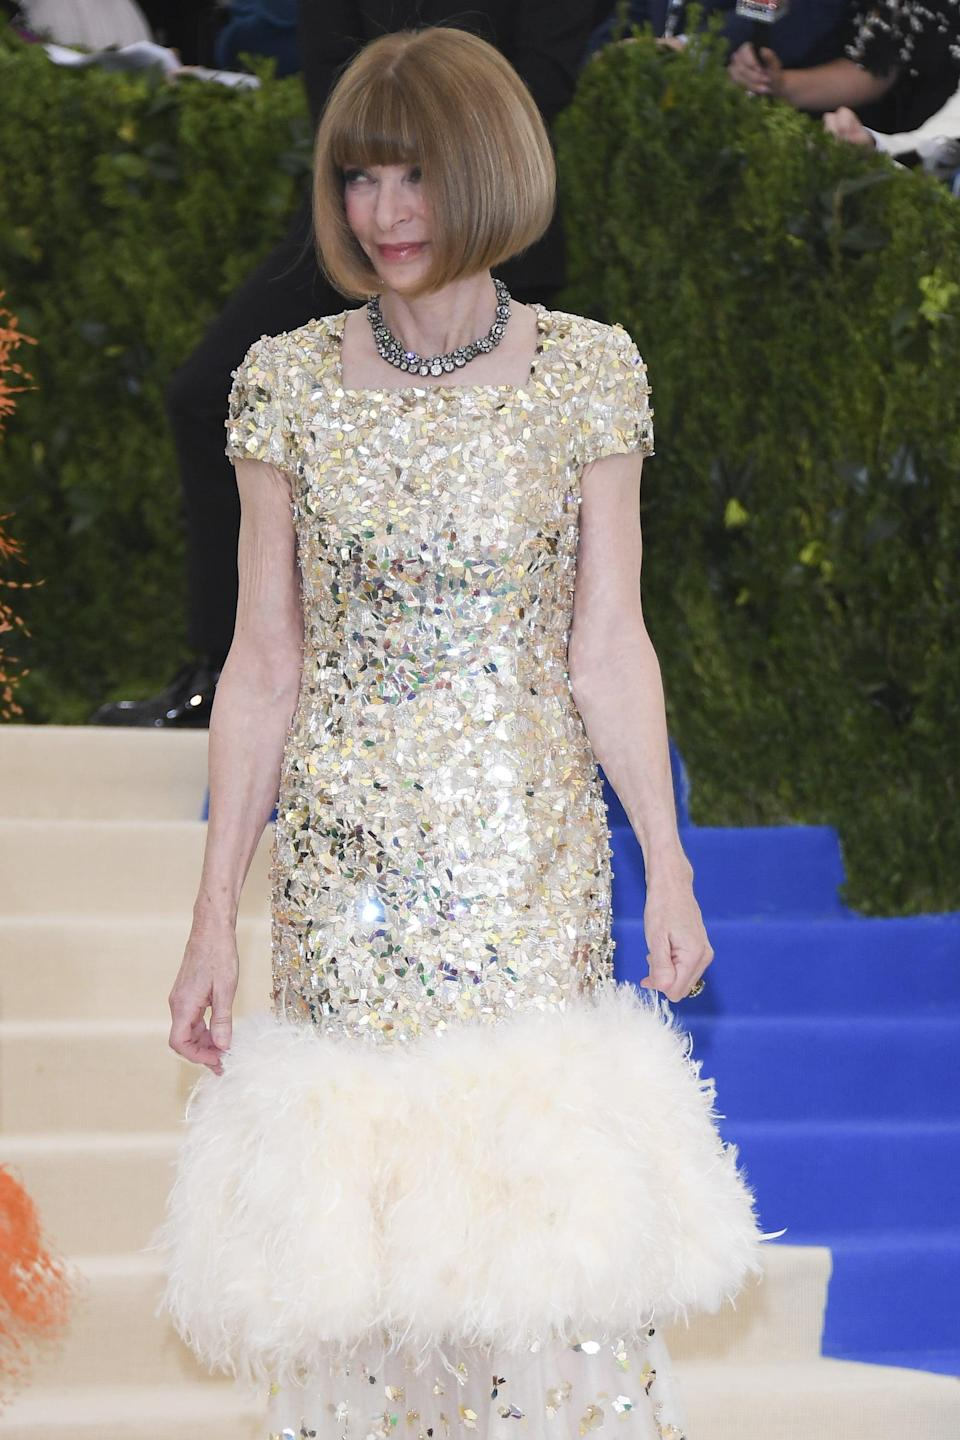 """<p>It's up to Anna Wintour. <a href=""""https://www.popsugar.com/fashion/Anna-Wintour-Leaving-Vogue-44716638"""" class=""""link rapid-noclick-resp"""" rel=""""nofollow noopener"""" target=""""_blank"""" data-ylk=""""slk:The Vogue editor"""">The <strong>Vogue</strong> editor</a> doesn't just approve the guest list, but also the seating charts and everyone's outfits. Monday night at the Met is for Hollywood's elite, including iconic singers like Cher and <a class=""""link rapid-noclick-resp"""" href=""""https://www.popsugar.com/Madonna"""" rel=""""nofollow noopener"""" target=""""_blank"""" data-ylk=""""slk:Madonna"""">Madonna</a>, and many of the same actors who show up to <strong>Vanity Fair</strong>'s afterparty following the Oscars. Of course, supermodels, designers, photographers, and even royals like Queen Rania of Jordan attend, too. Anna Wintour and <a href=""""https://www.popsugar.com/fashion/Bee-Shaffer-Engagement-Ring-43492513"""" class=""""link rapid-noclick-resp"""" rel=""""nofollow noopener"""" target=""""_blank"""" data-ylk=""""slk:her daughter Bee Shaffer"""">her daughter Bee Shaffer</a> are always first to arrive, in order to oversee every detail.</p>"""